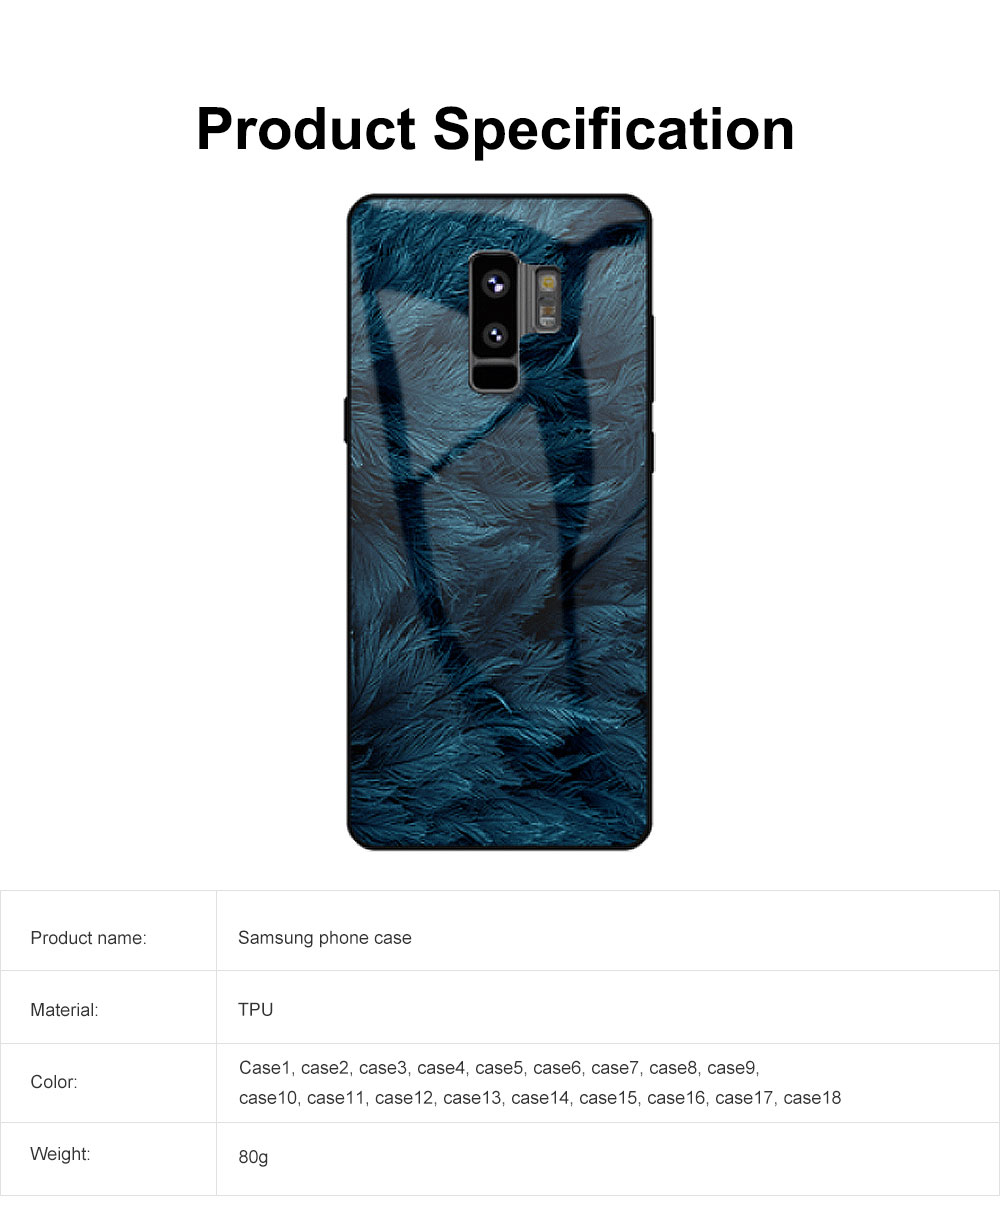 Stylish Protective Phone Case for Samsung Note 8 Note 9 S8 S9 Plus S10 Plus S10E, Silicone Tempered Glass Phone Cover Shatterproof with Unique Pattern 6